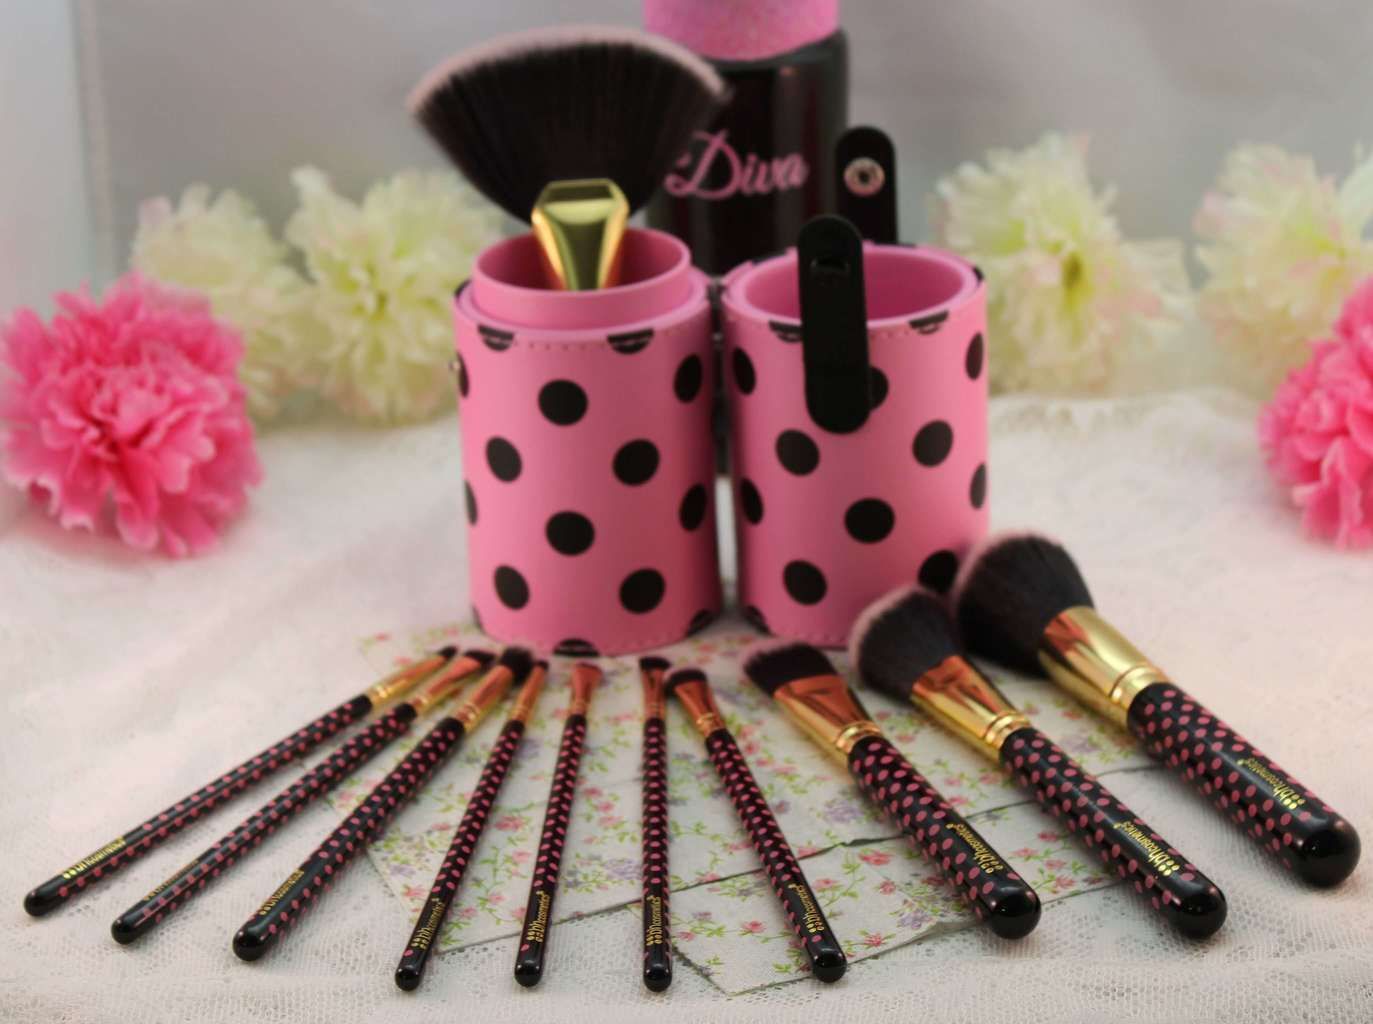 140a978c70b7 Beth and Beauty s Review  BH Cosmetics 11 pcs Pink-A-Dot Brush Set ...